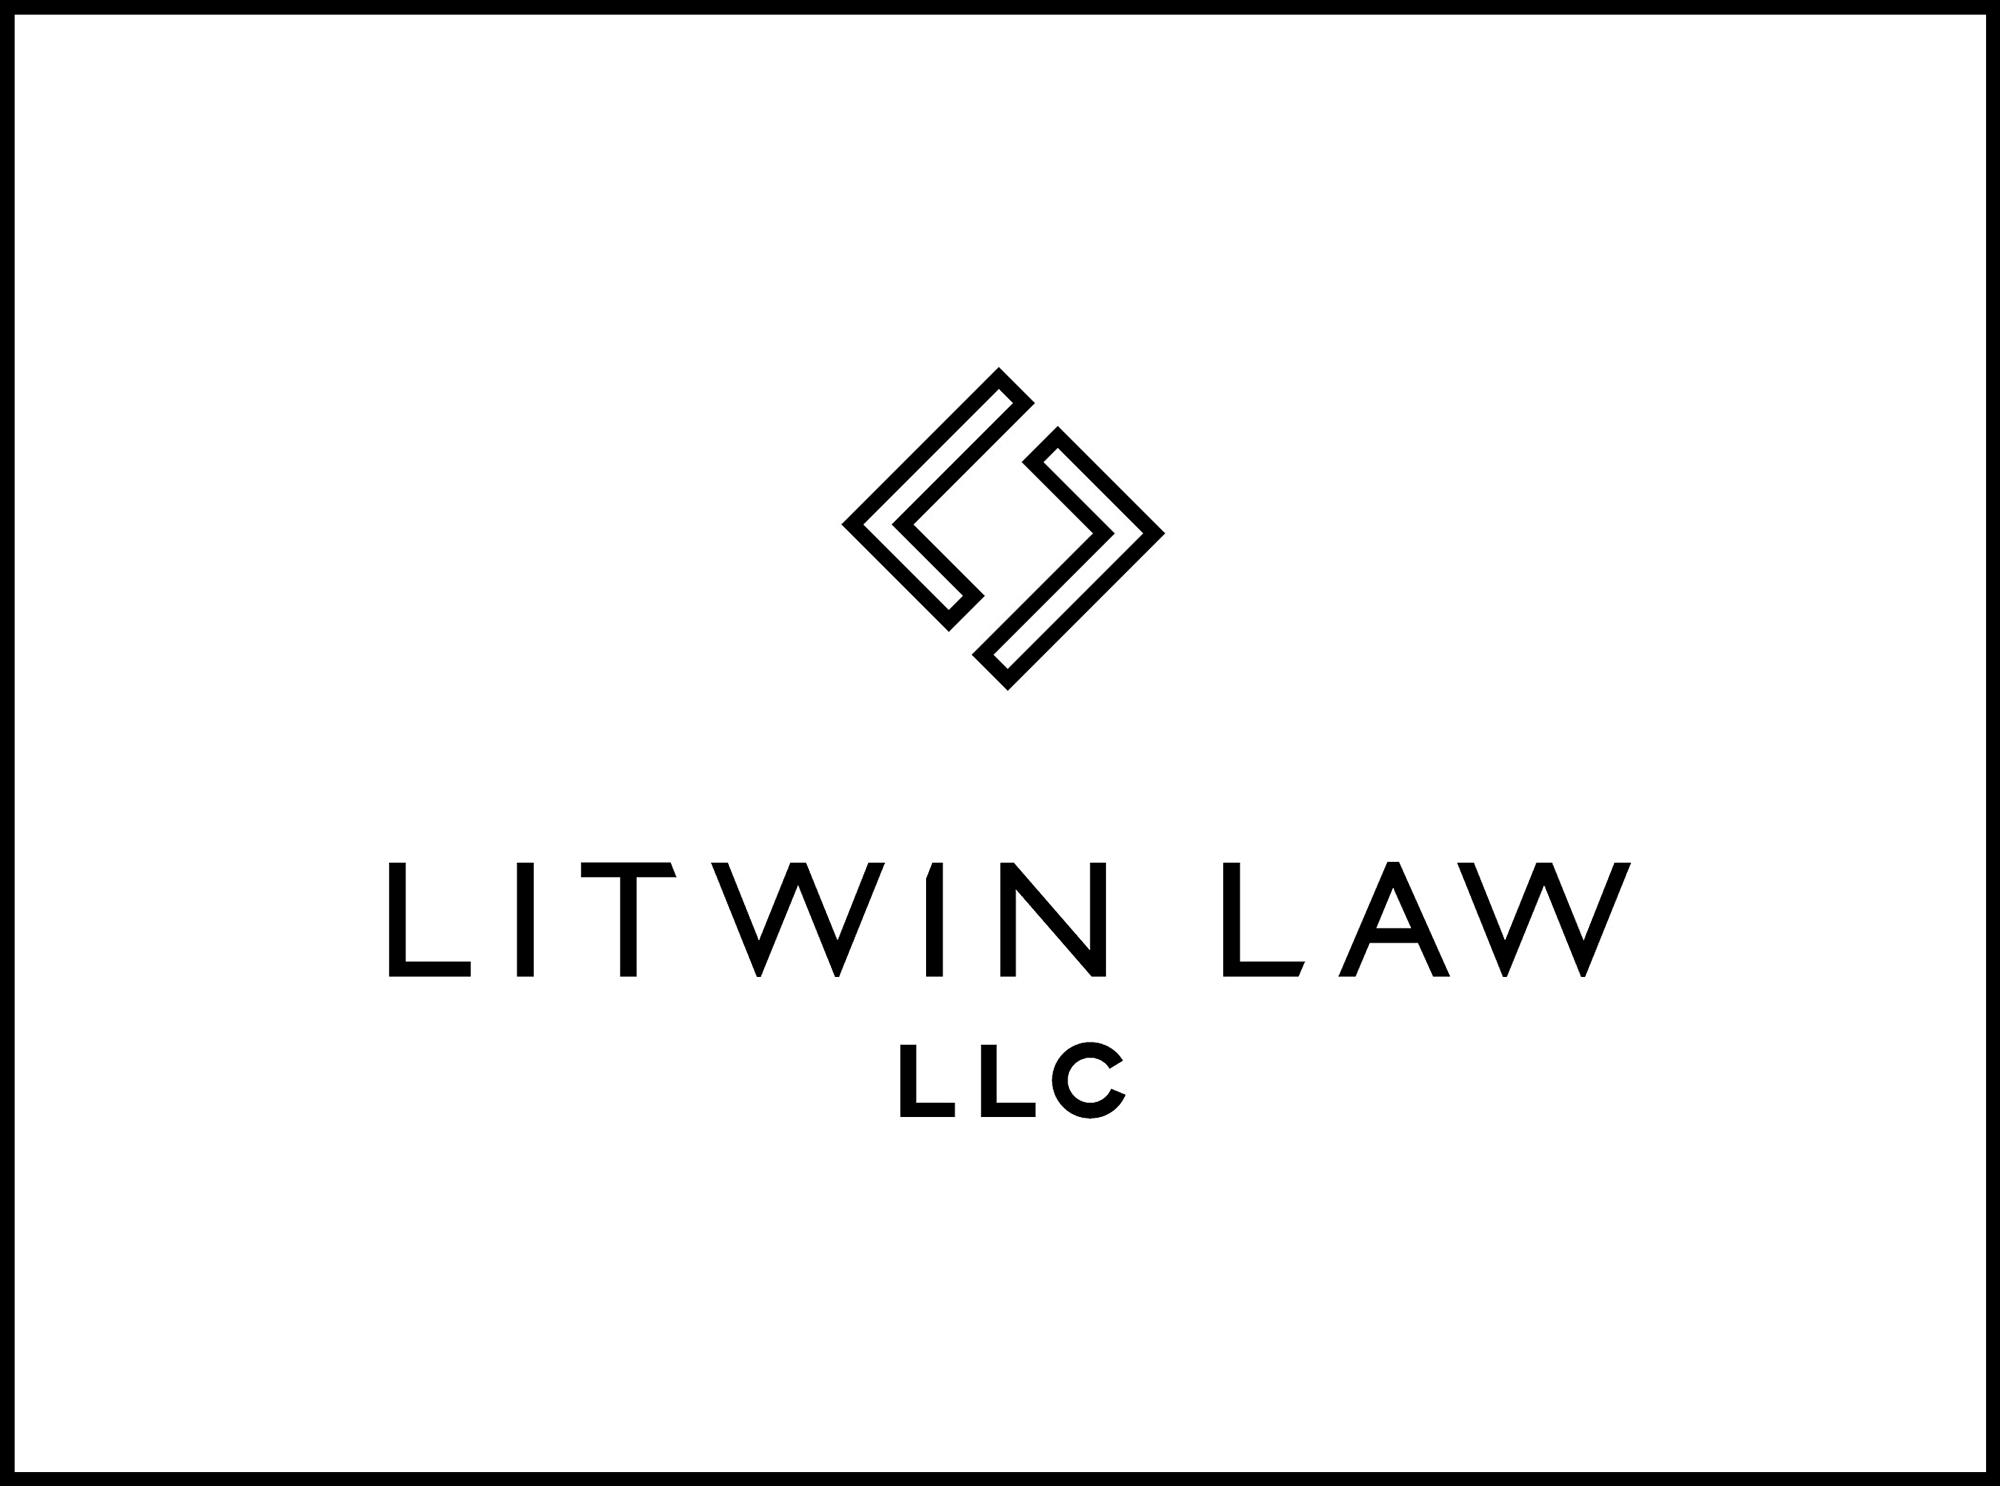 Start Smart! Vet Your Trademarks with Litwin Law